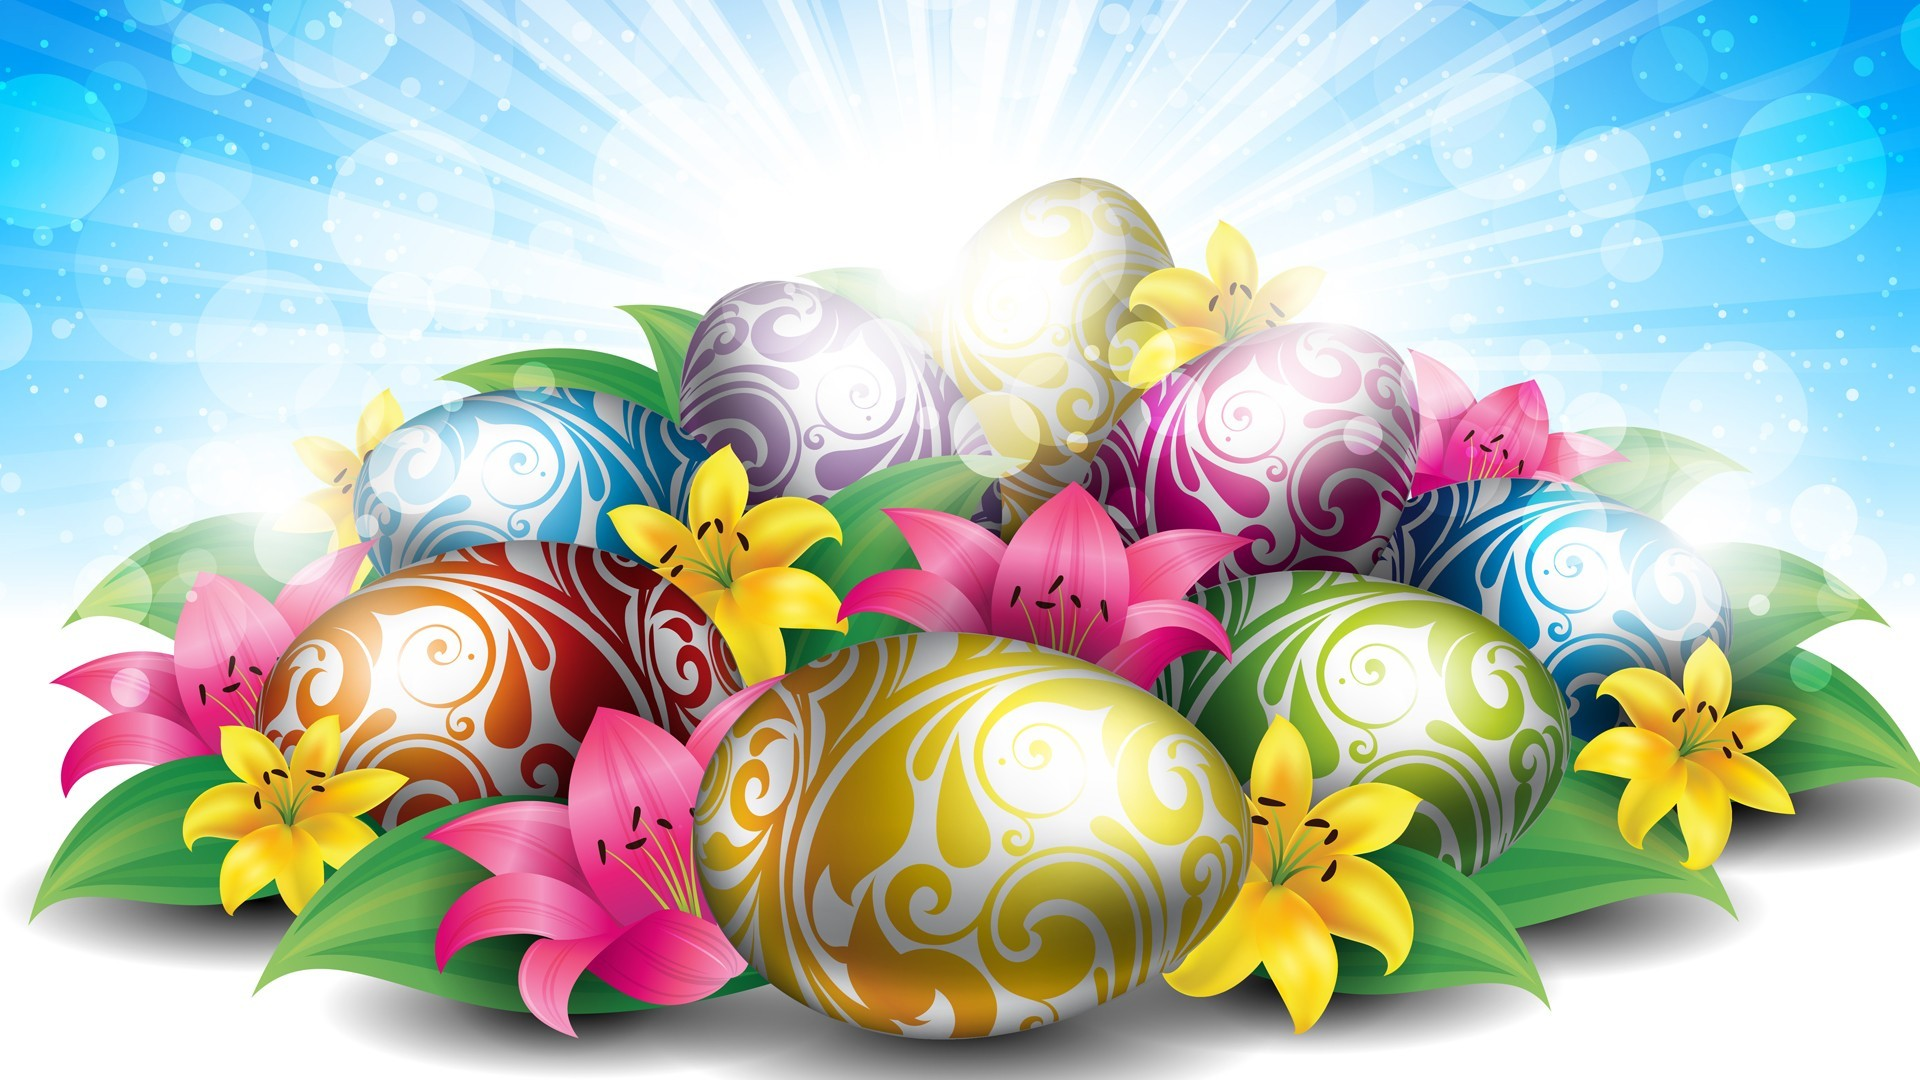 1920x1080 hd wallpaper lilies eggs for easter - Background Wallpapers for your .